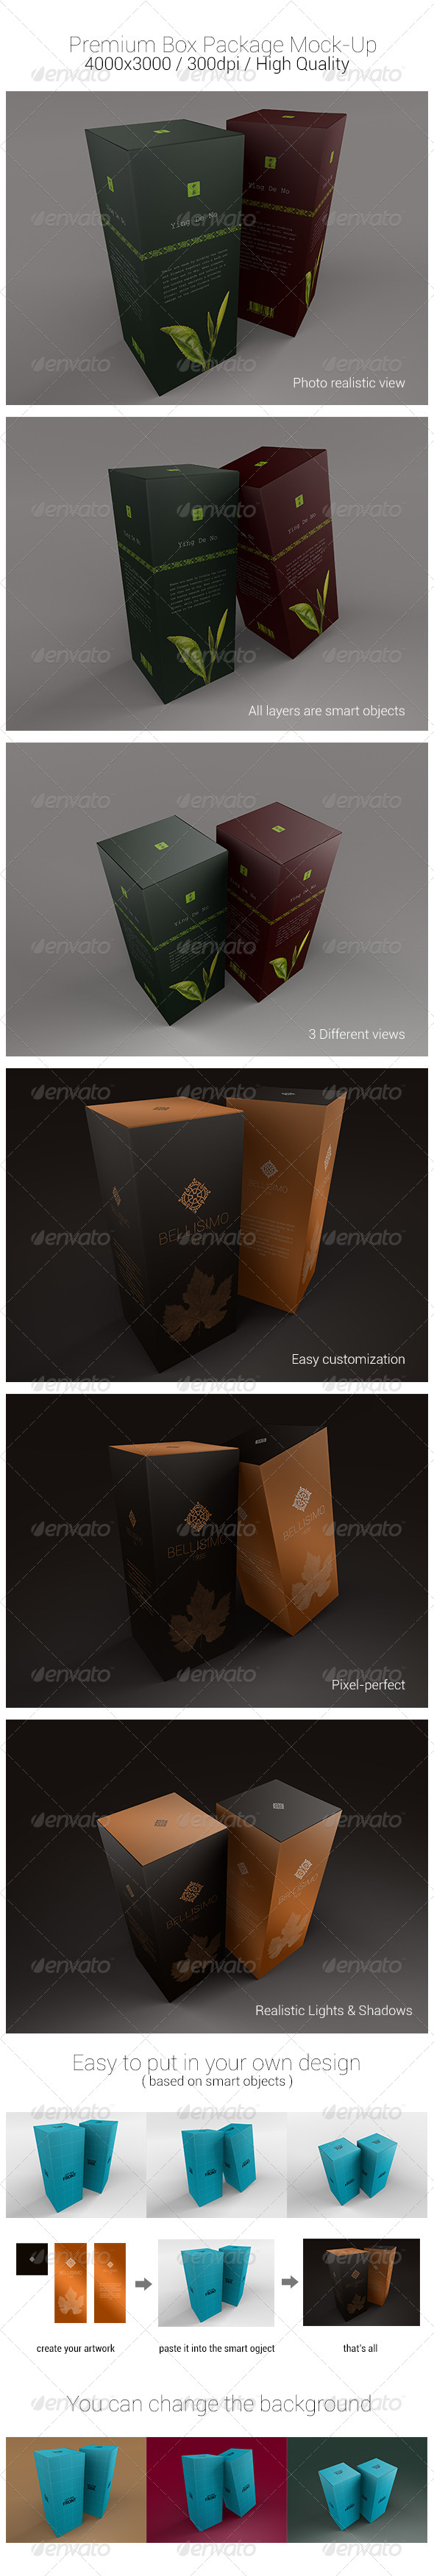 GraphicRiver Premium Box Package Mock-Ups 4732413